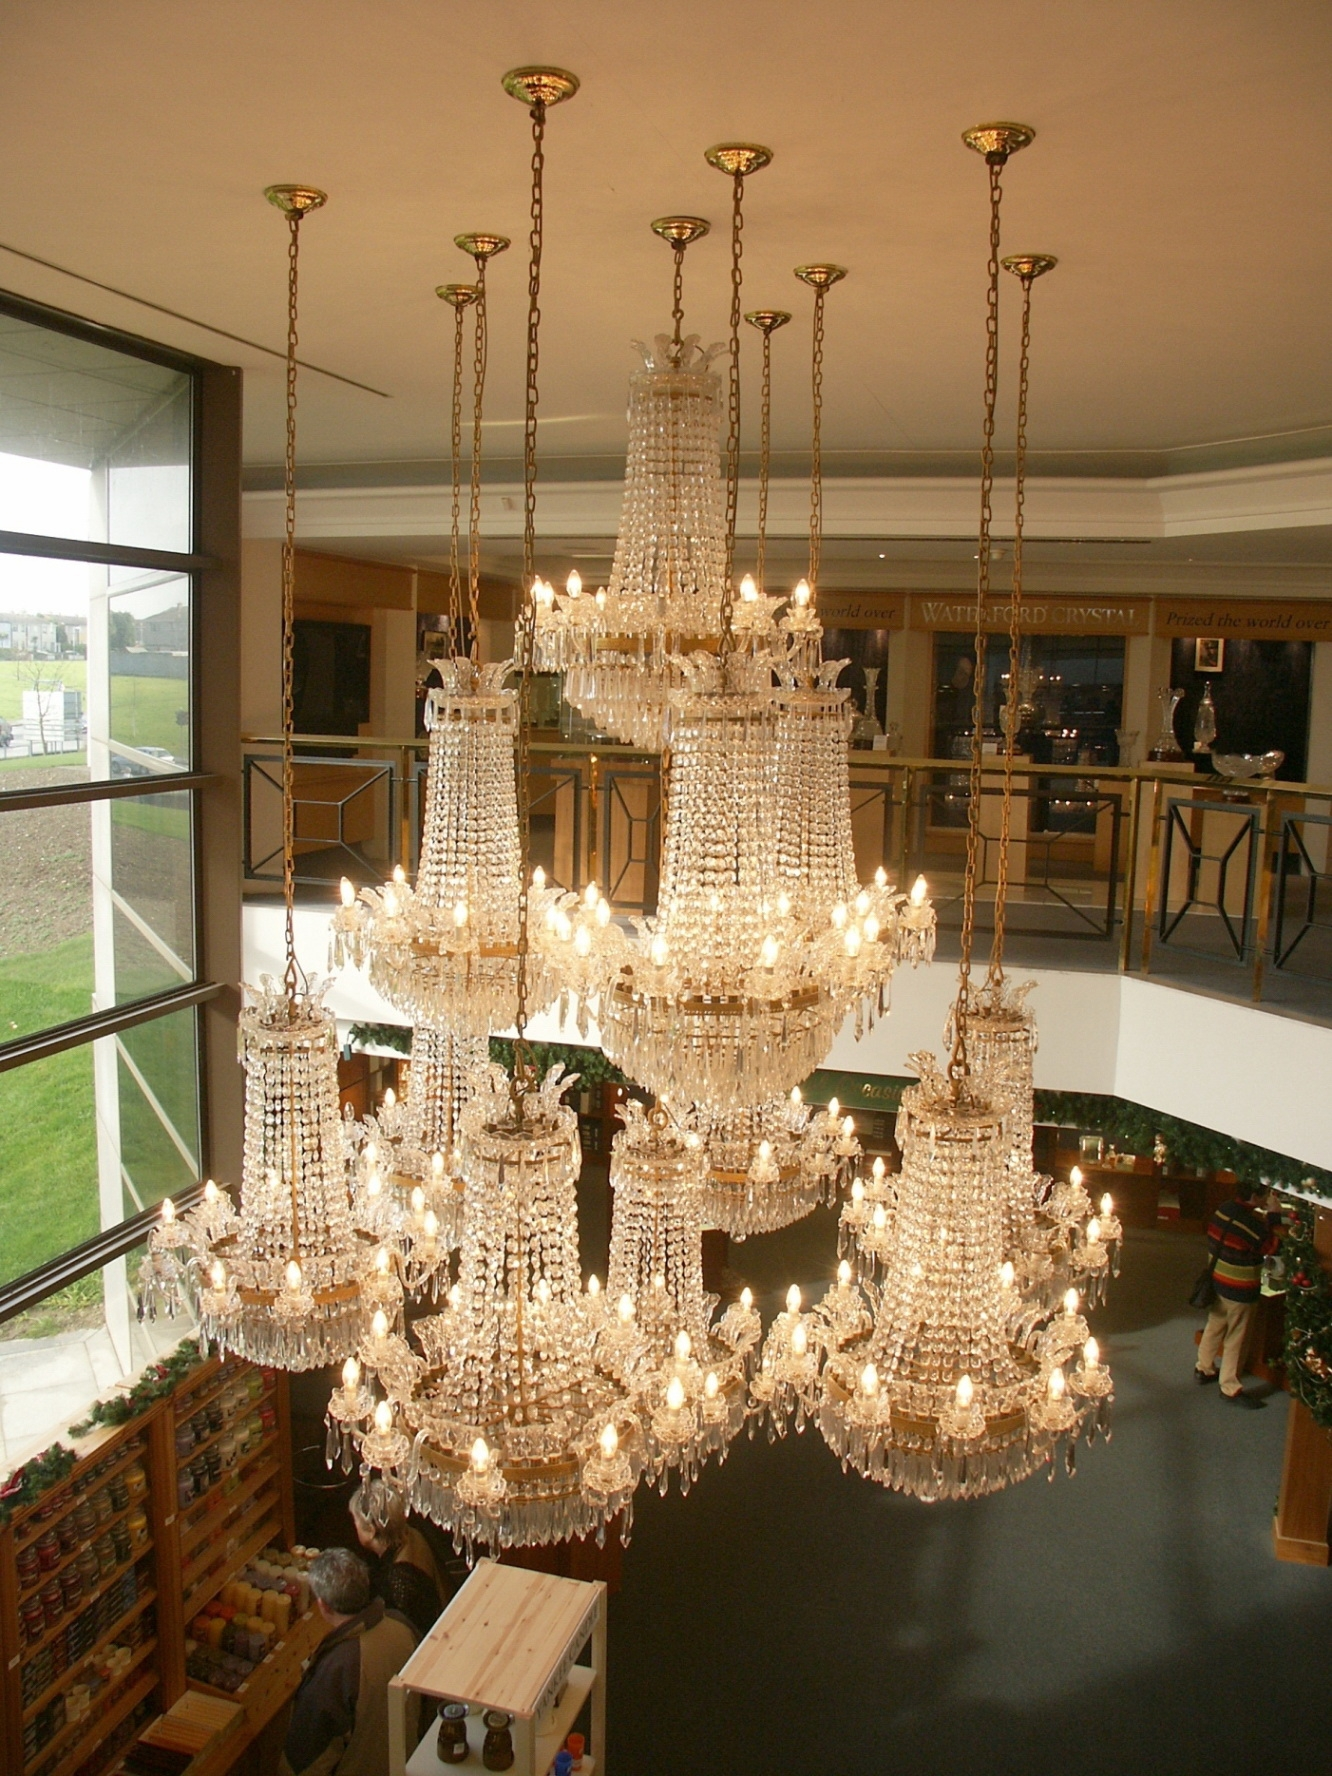 Lighten Up 4 Tips For Hanging Chandeliers Pendant Lights With Regard To Long Hanging Chandeliers (Image 11 of 15)